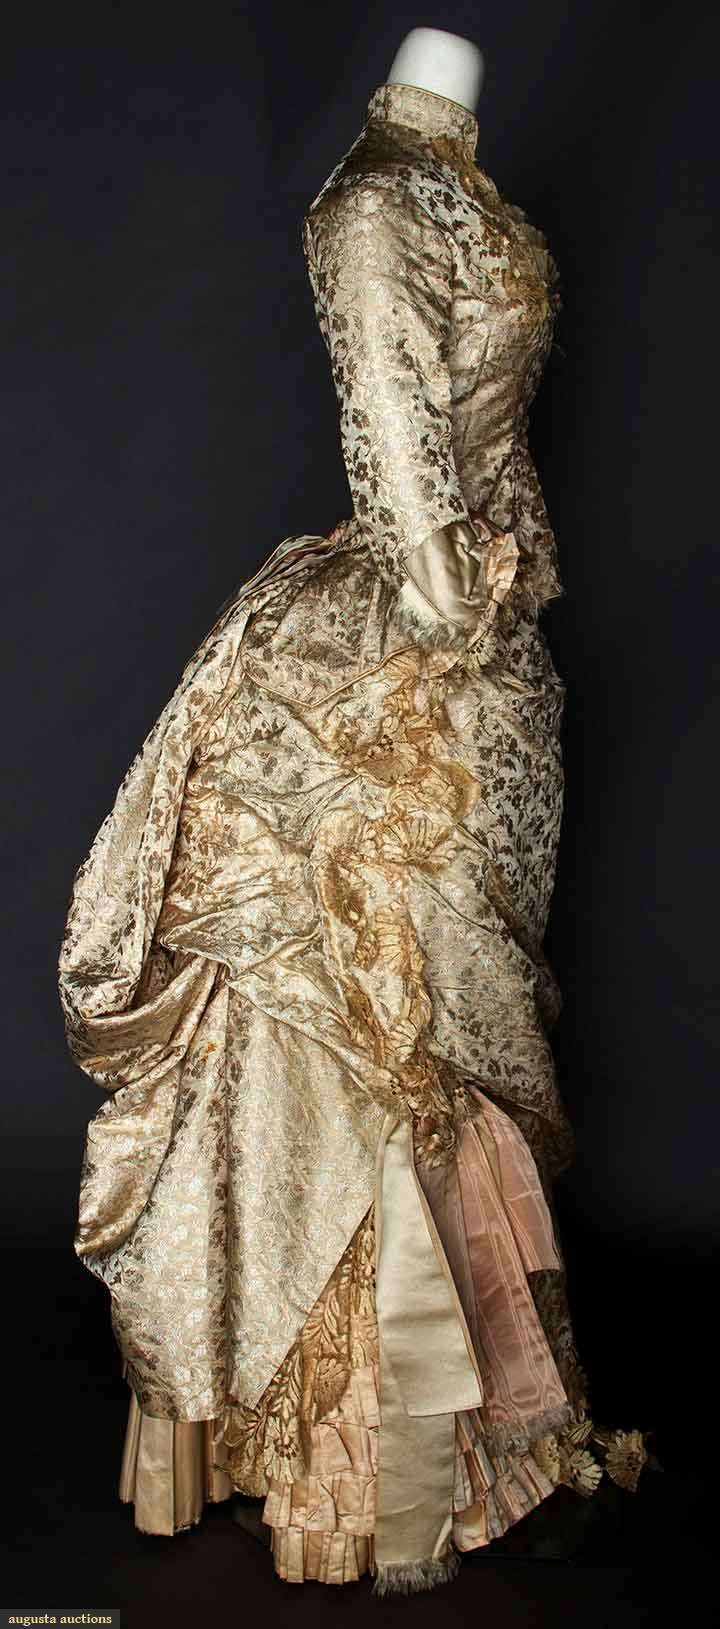 1880 SILK BROCADE WEDDING DRESS: 2-piece, pale pink brocade flowers on cream silk faille, bodice and skirt trimmed w/blonde lace, removable ruffled modesty neckpiece, cotton, satin and buckram linings.